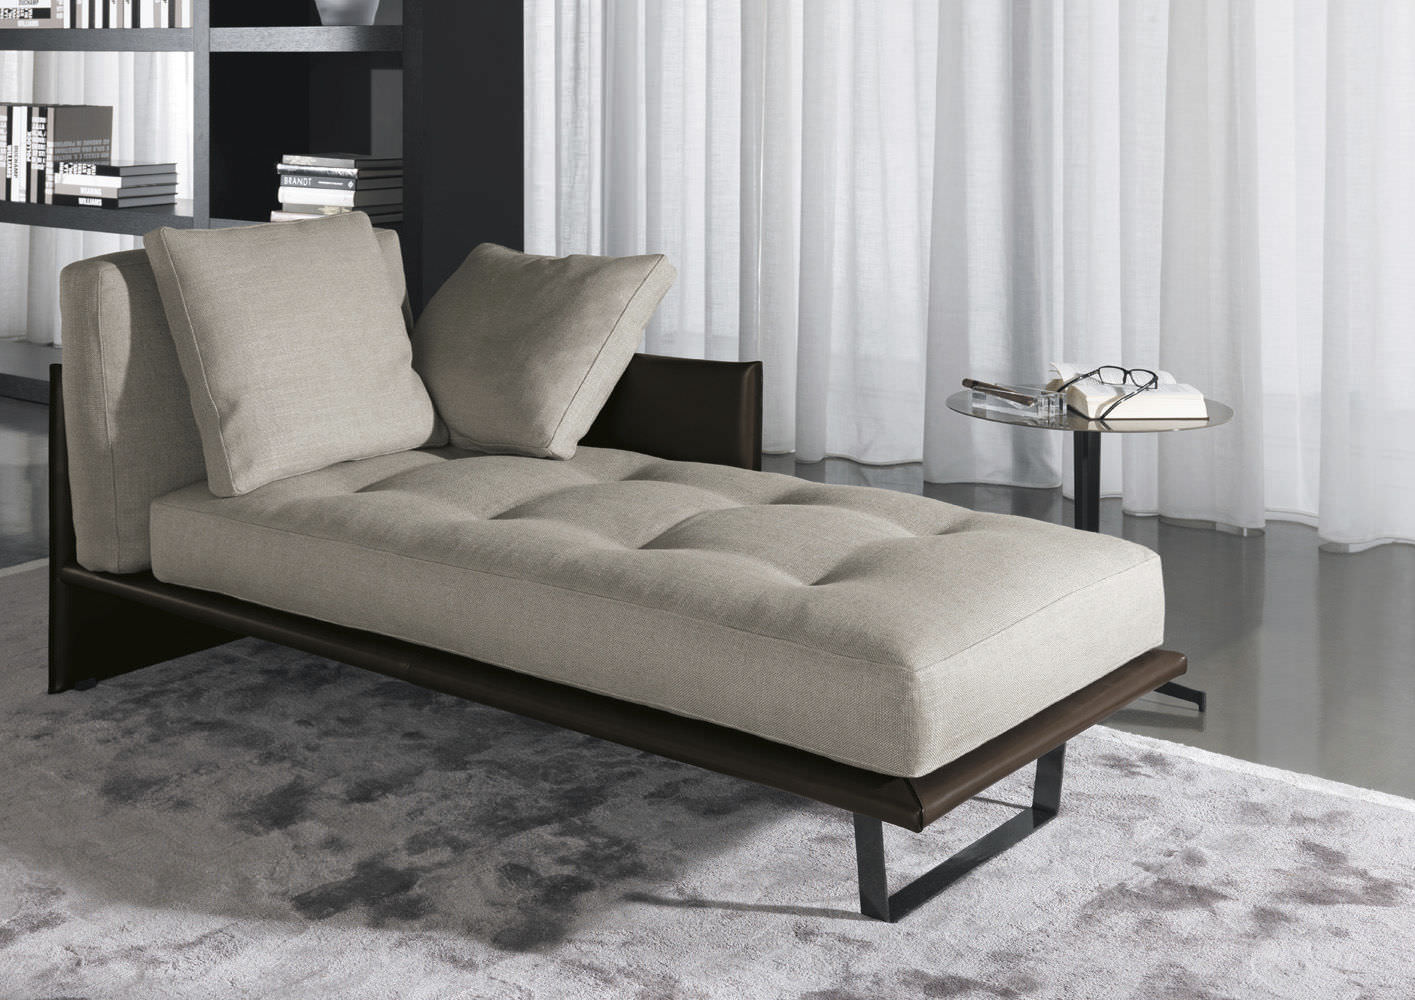 Contemporary leather daybed by Rodolfo Dordoni - LUGGAGE - Minotti